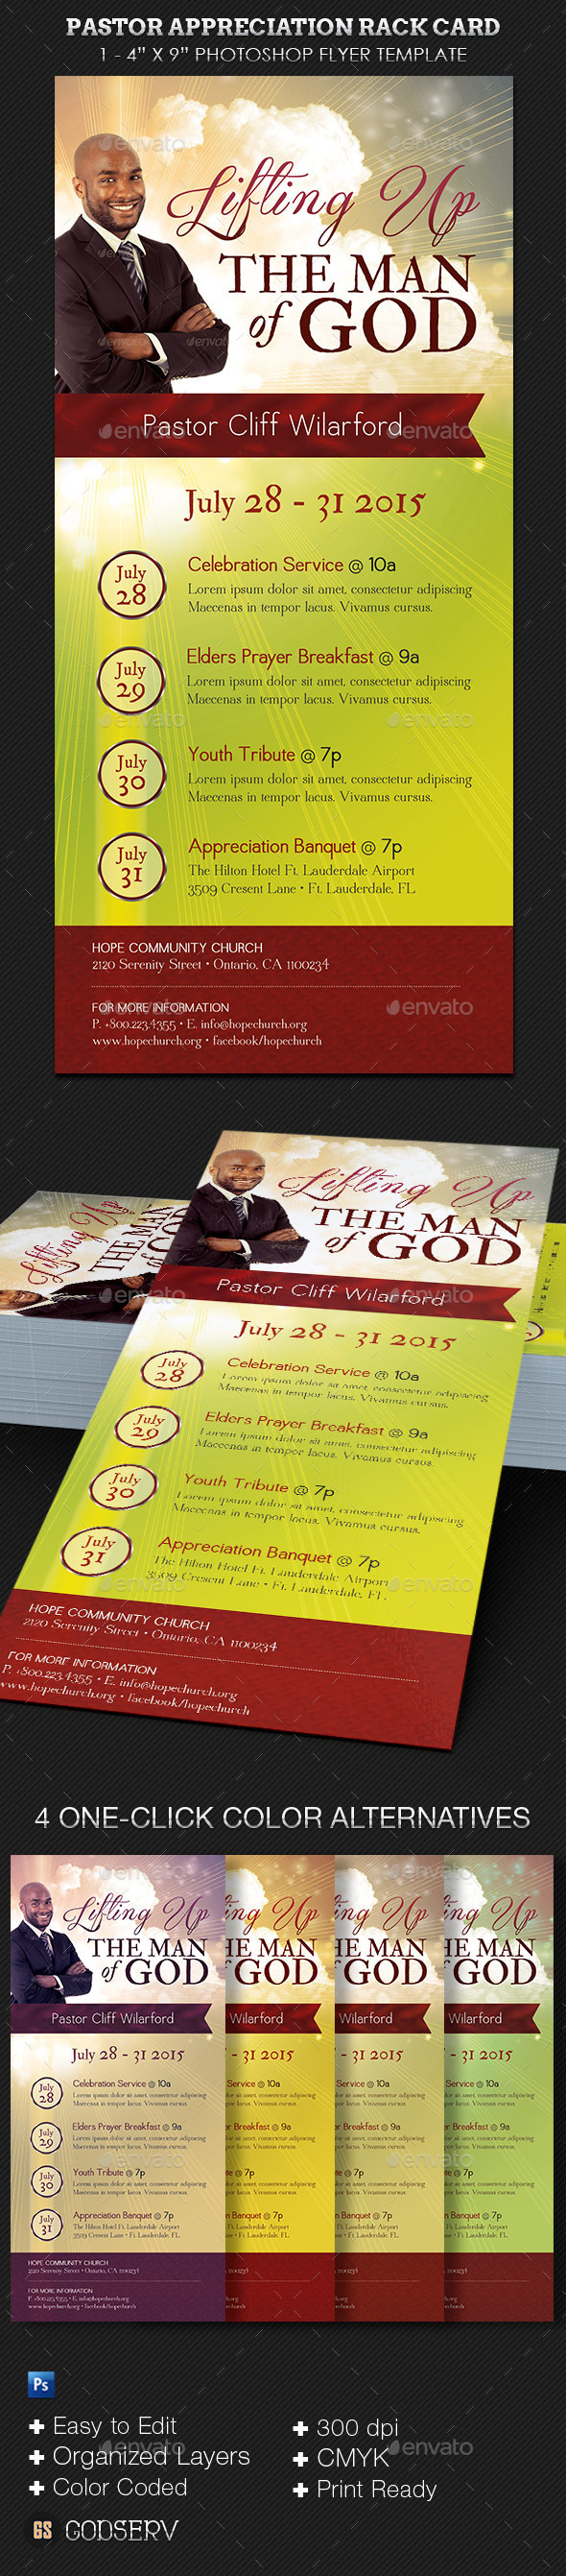 Pastor Appreciation Rack Card Template - Church Flyers